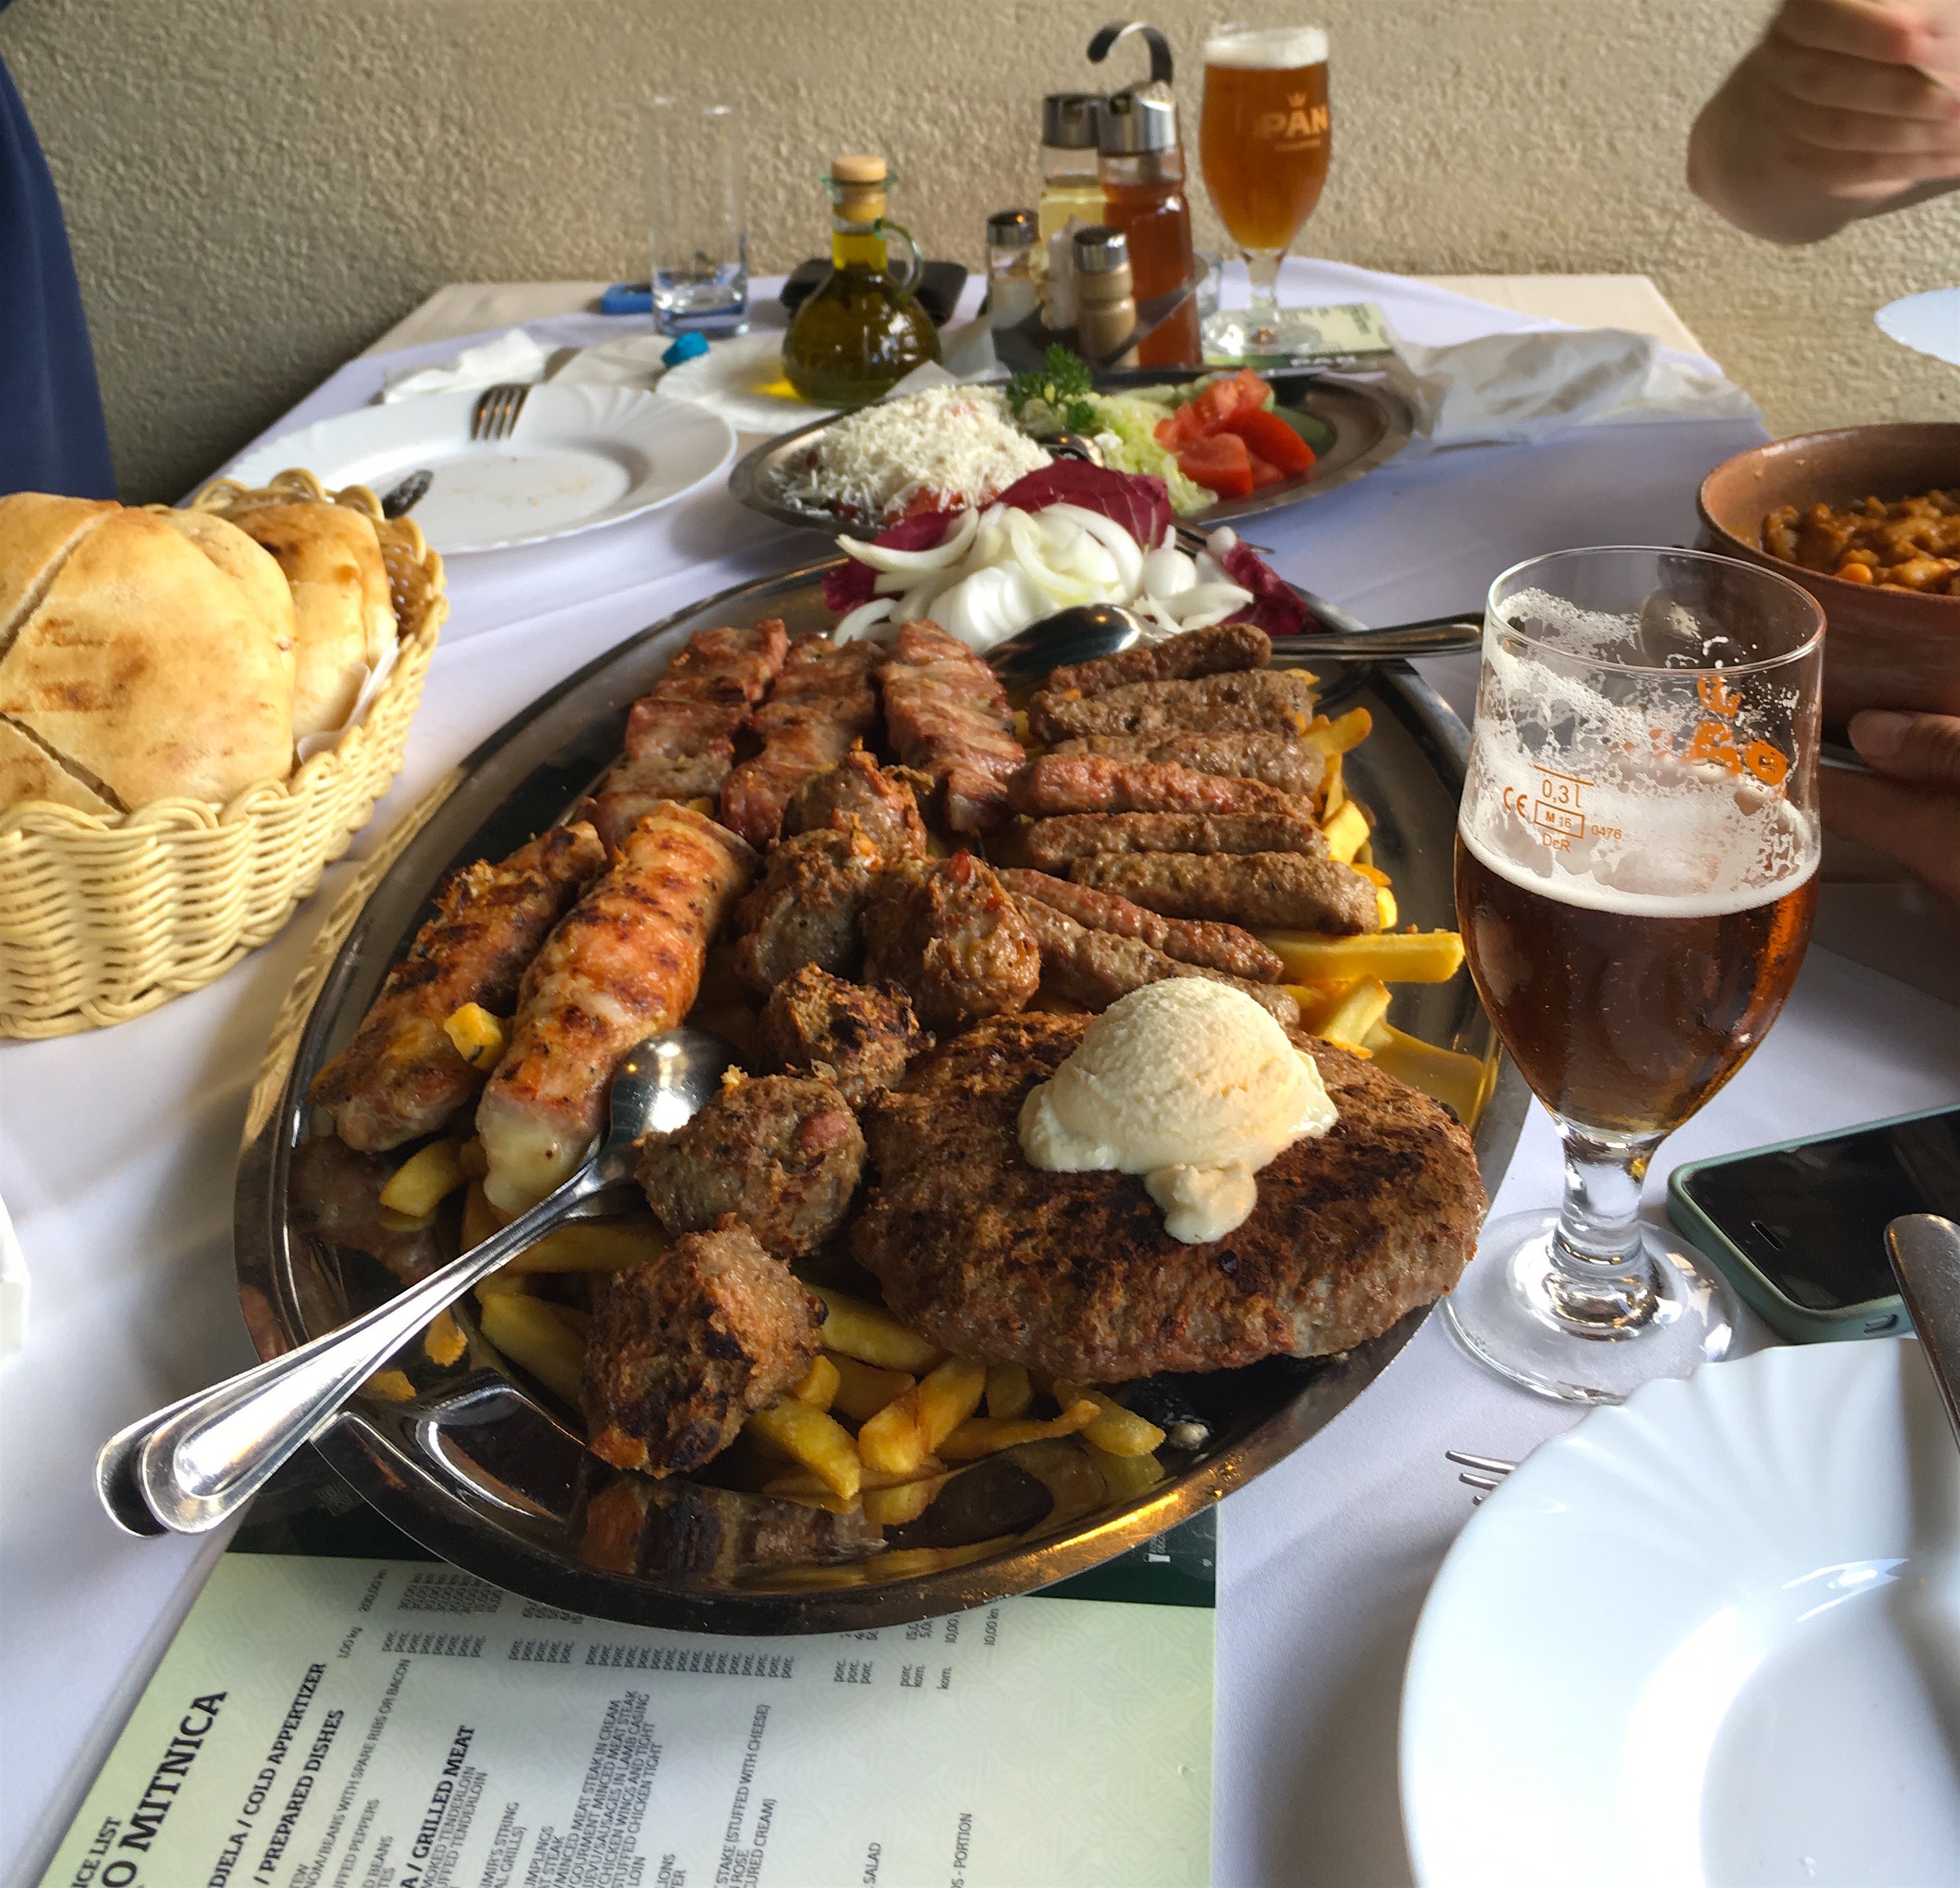 Feasting on traditional cuisine is a highlight for visitors to Croatia.